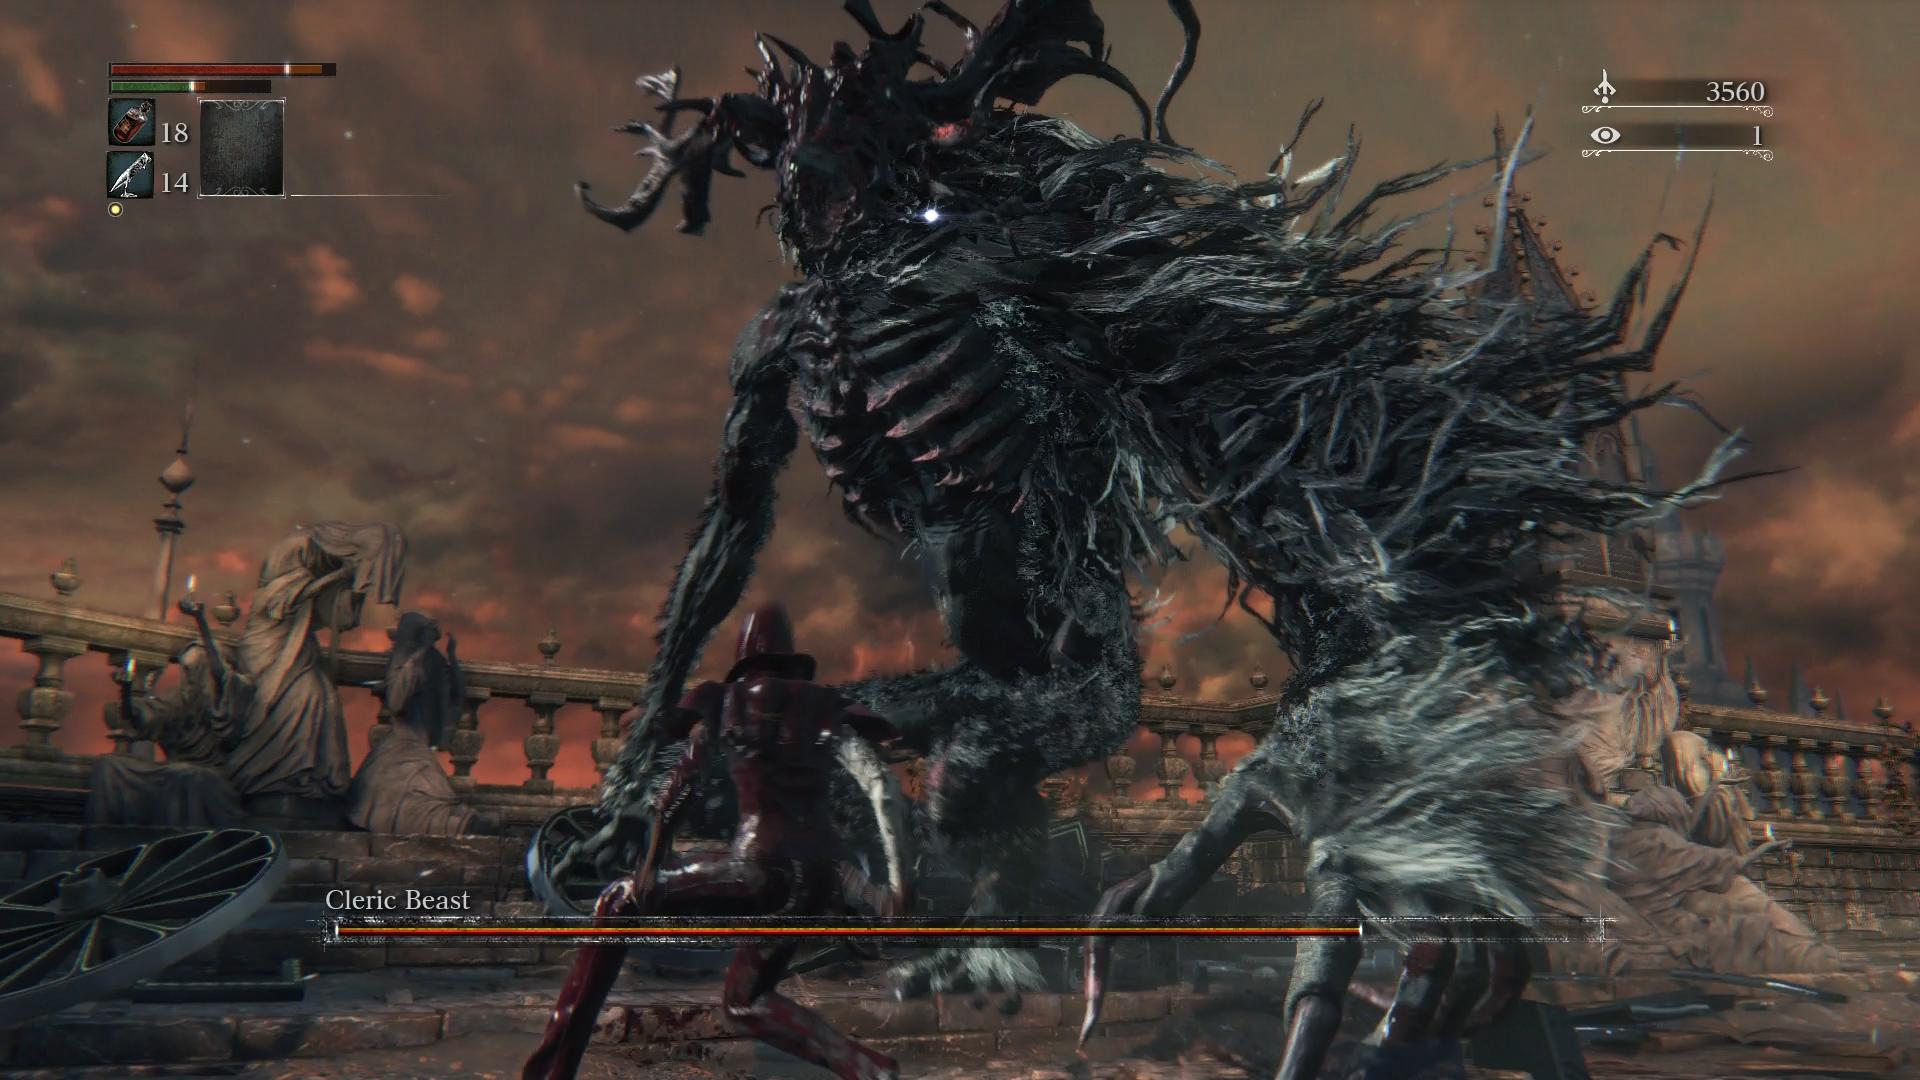 Bloodborne Boss Guide: How to Beat Cleric Beast